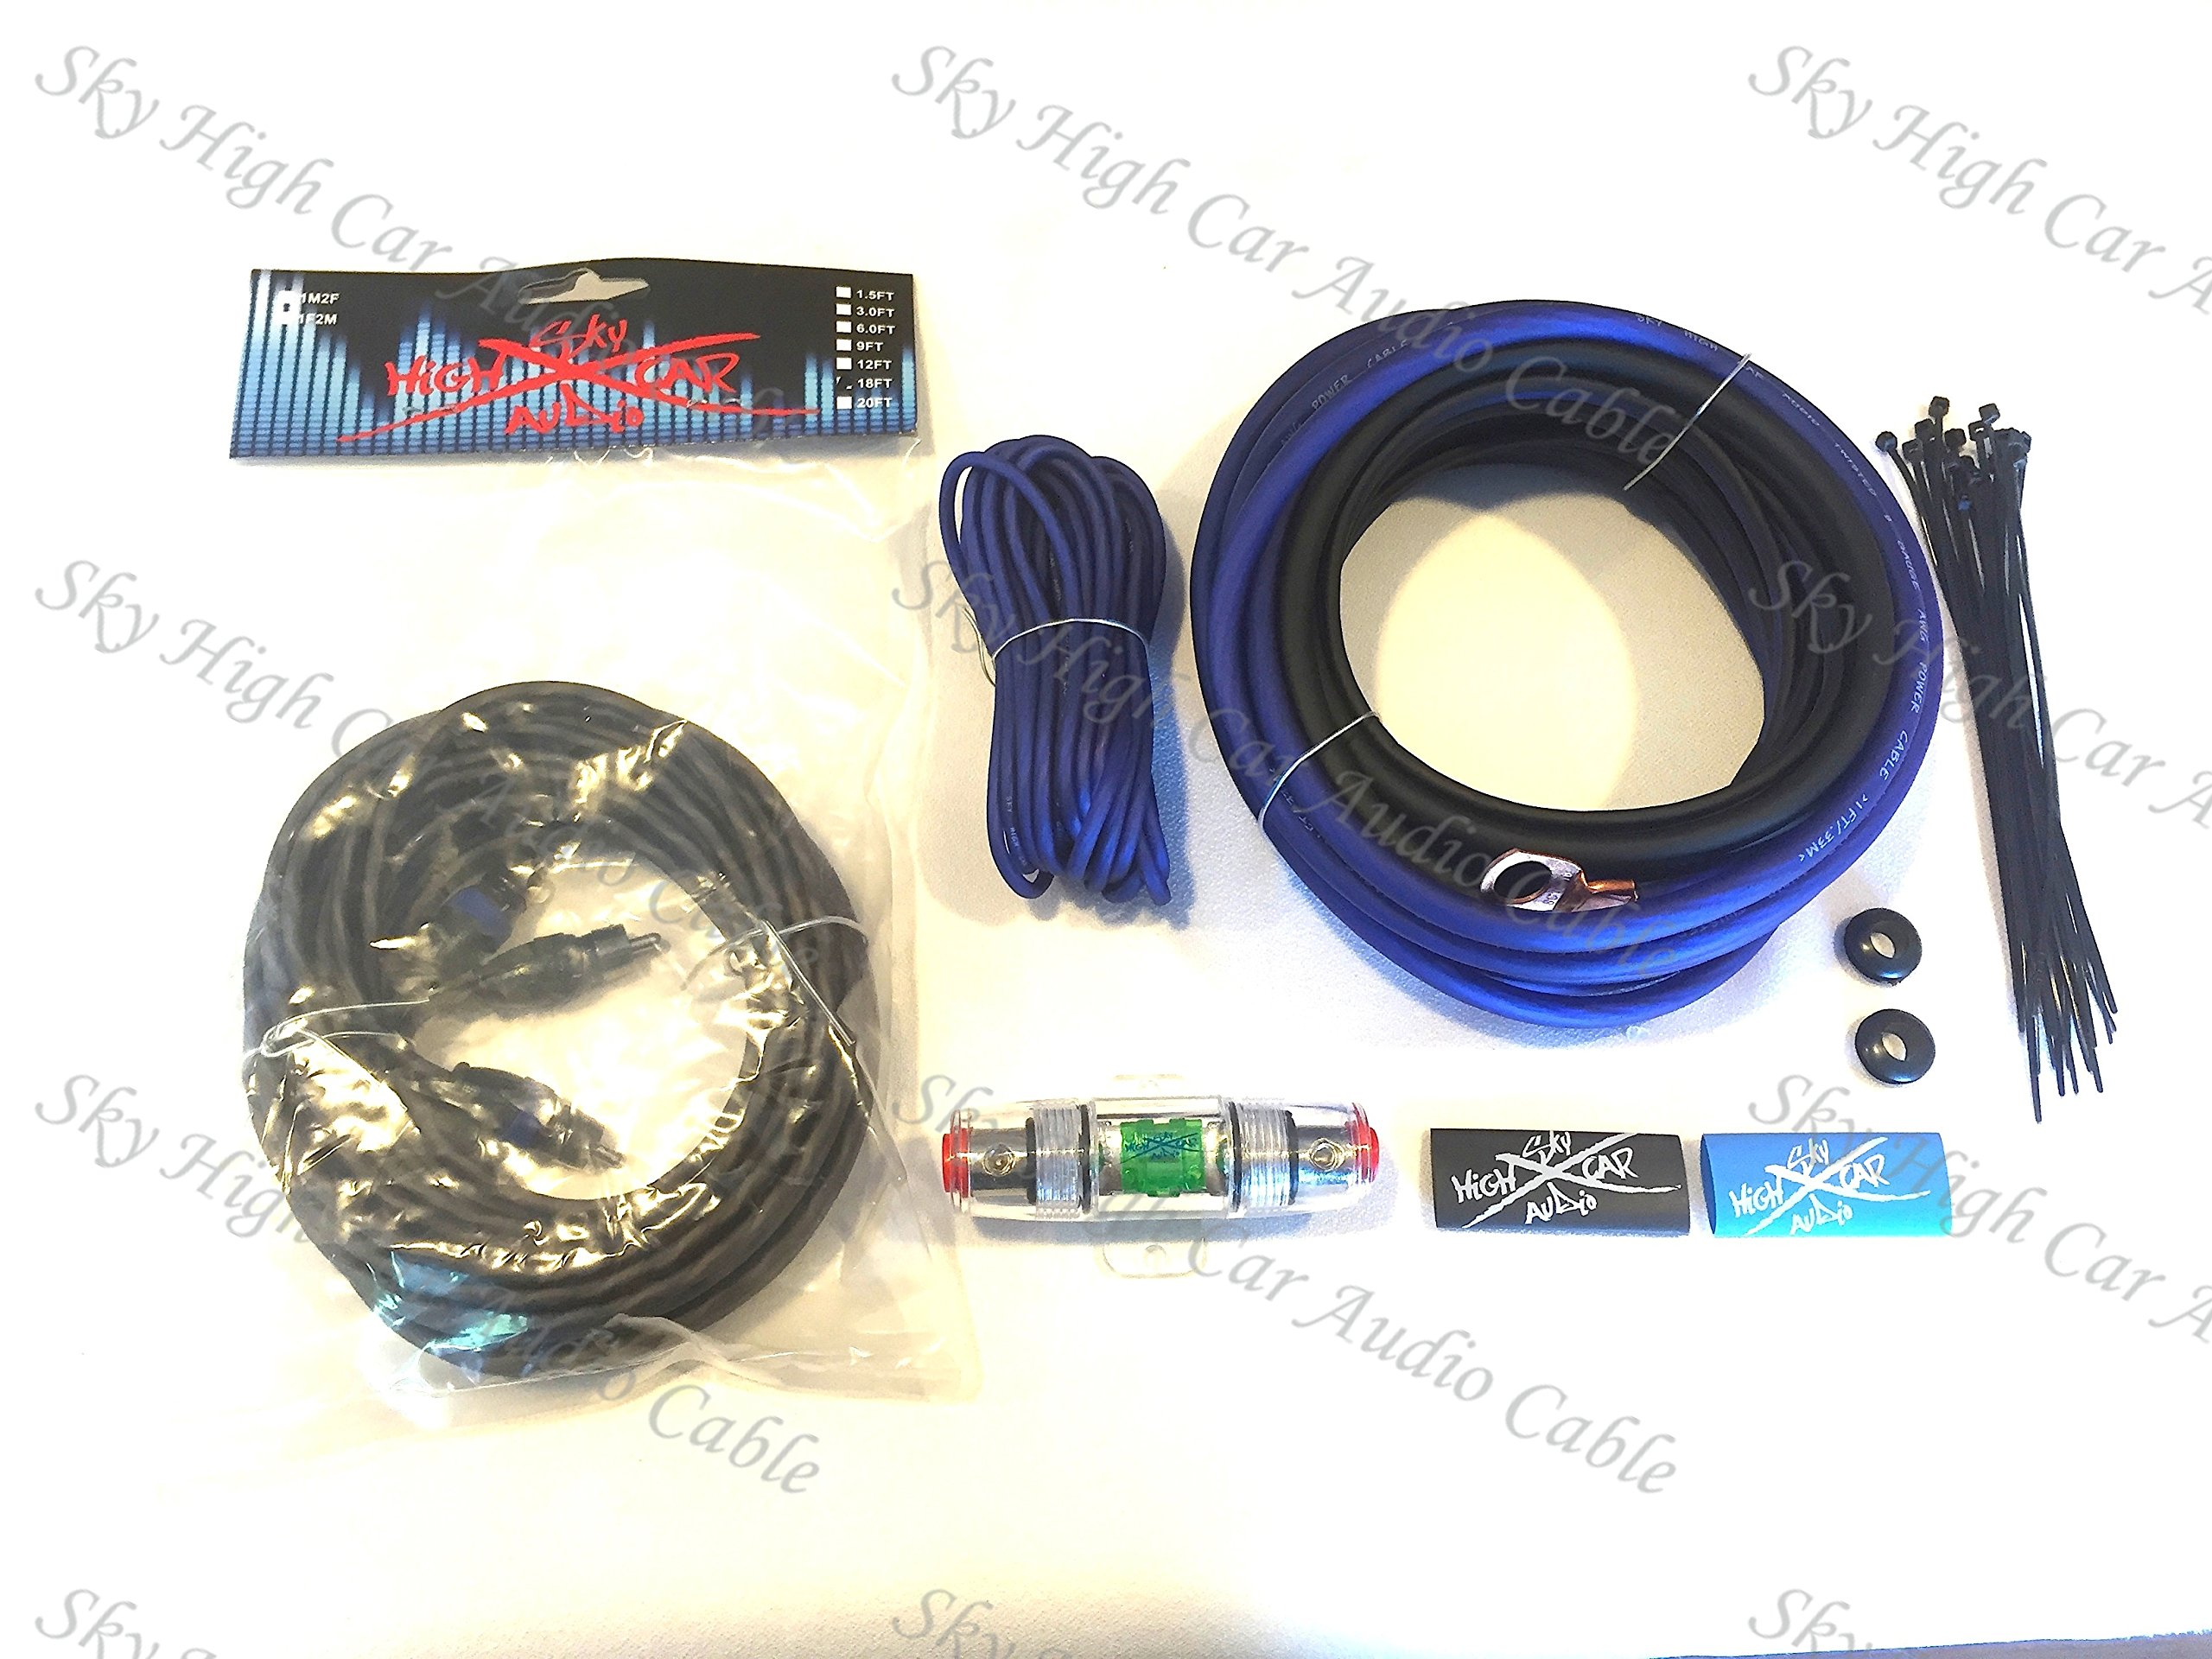 Oversized 8 Ga CCA AWG Amp Kit Twisted RCA Blue Black Complete Sky High